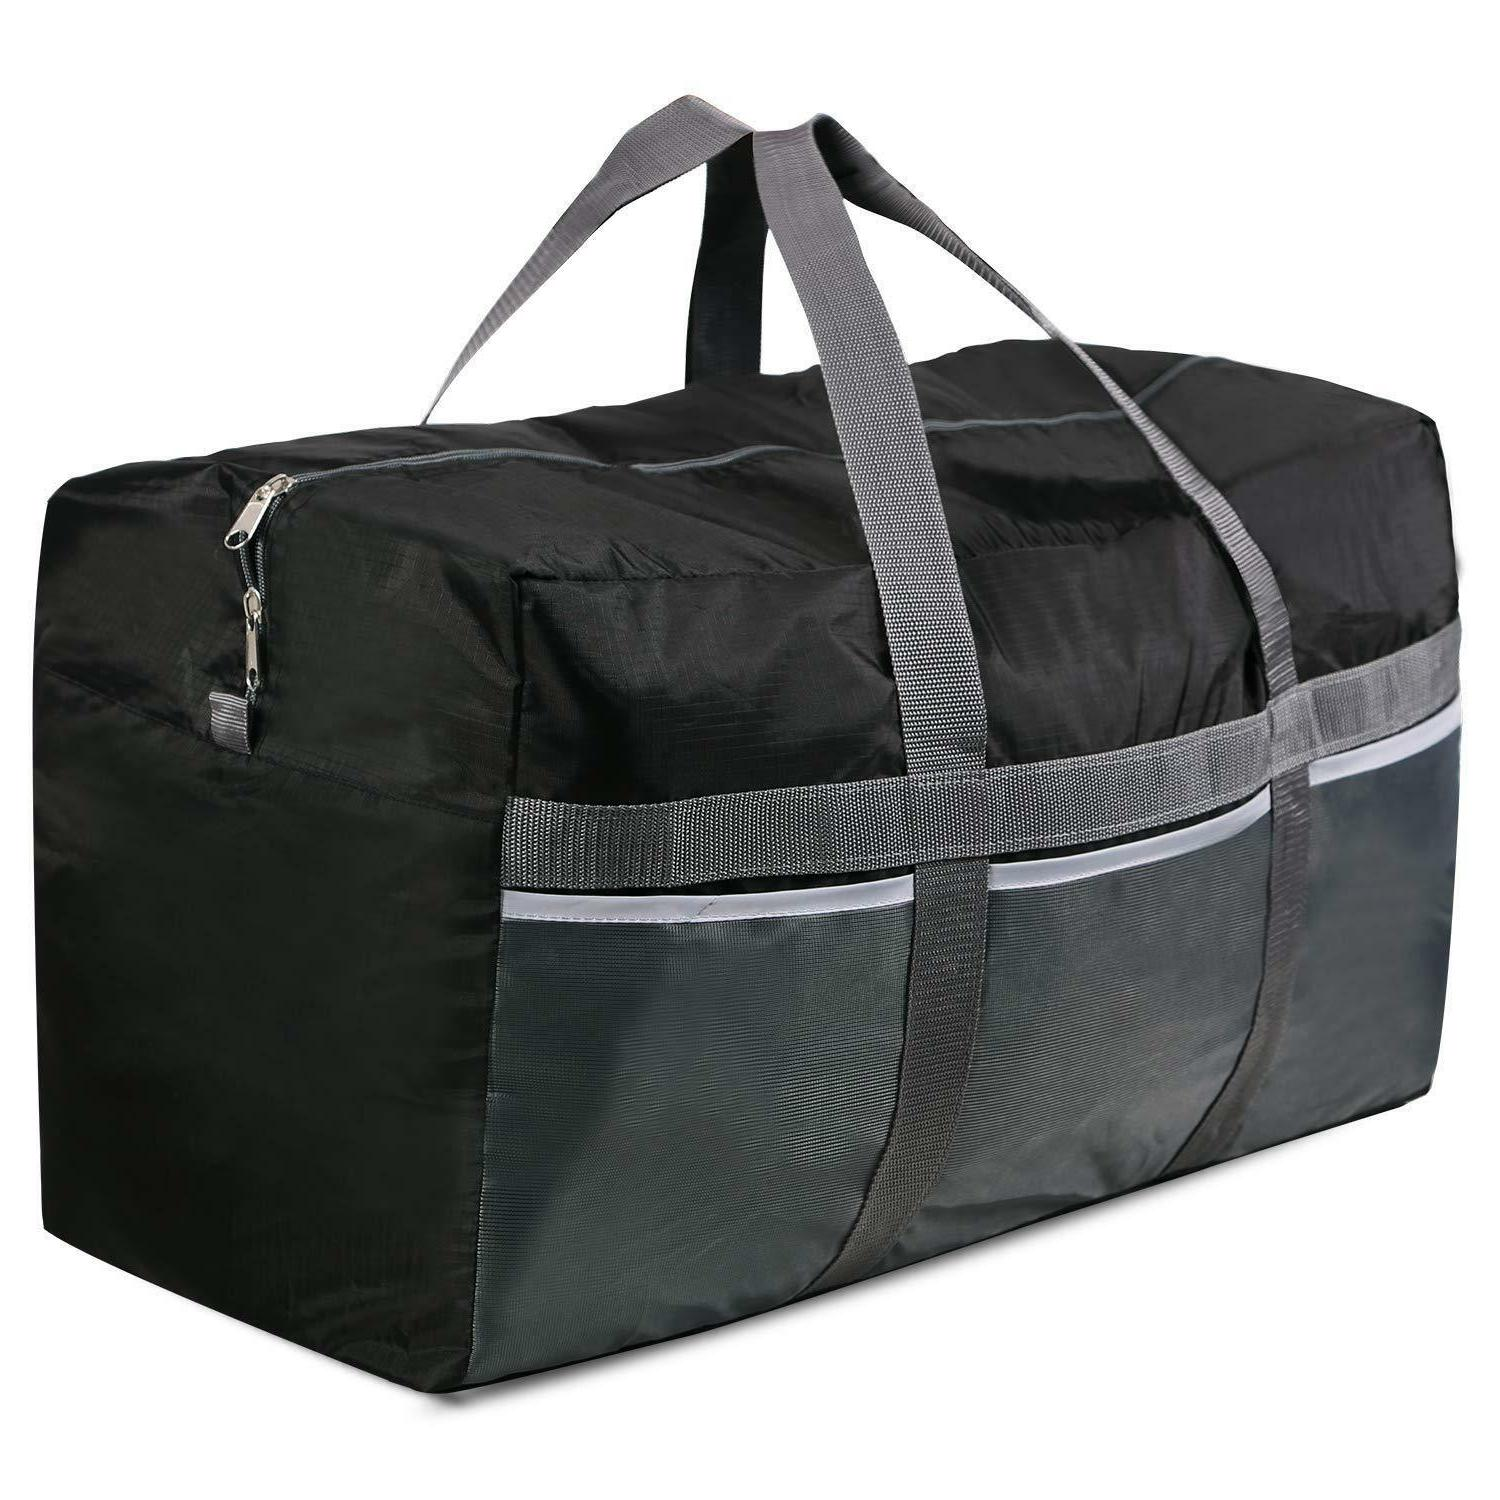 extra large duffel bag 96l lightweight waterproof